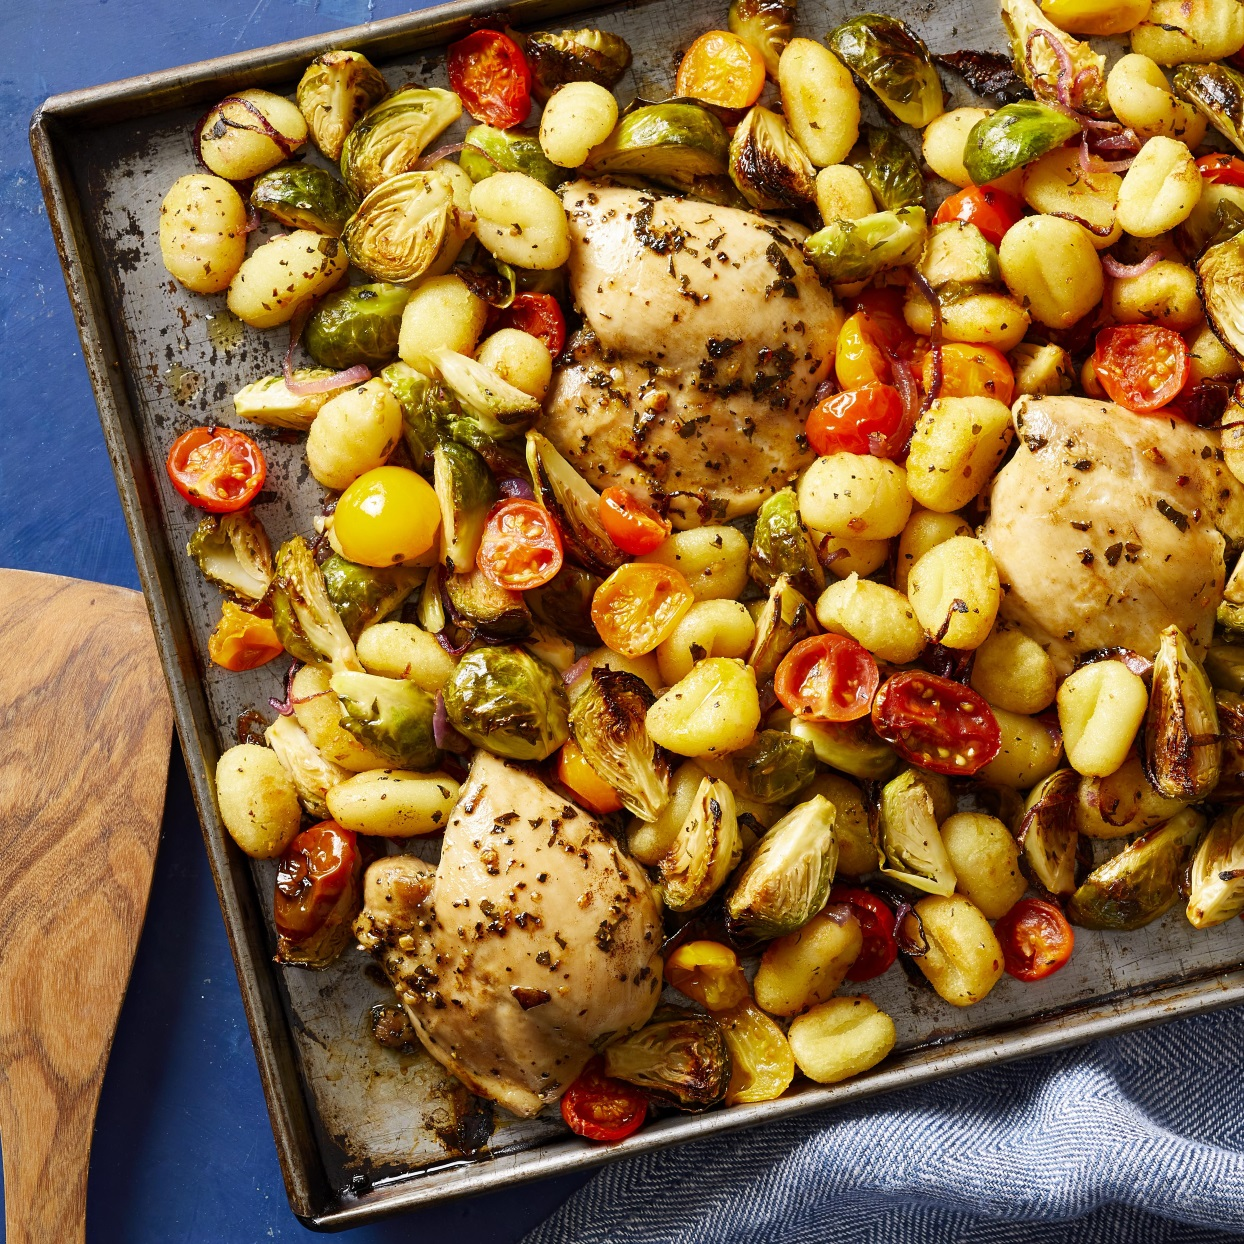 Sheet-Pan Mediterranean Chicken, Brussels Sprouts & Gnocchi